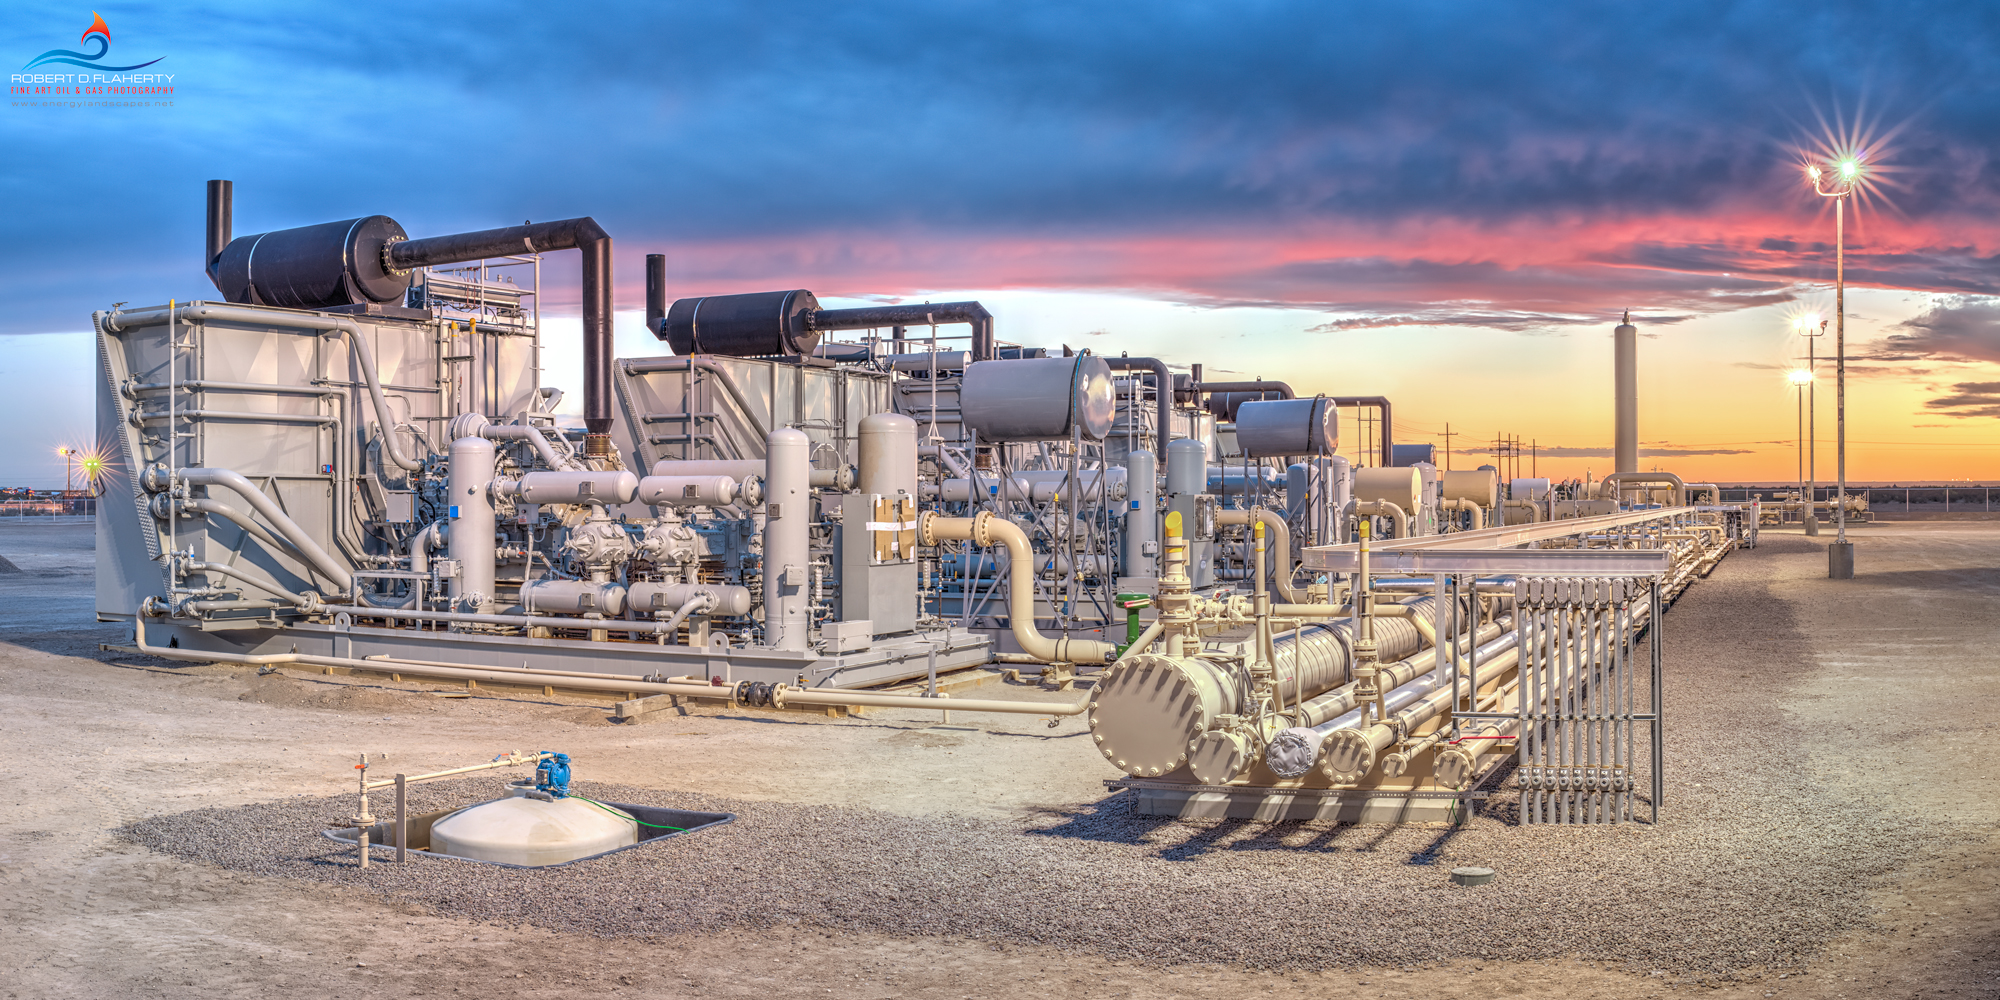 Delaware Compressor Sunset II features a newly completed compressor battery in the central Delaware Basin of Western Texas. The...